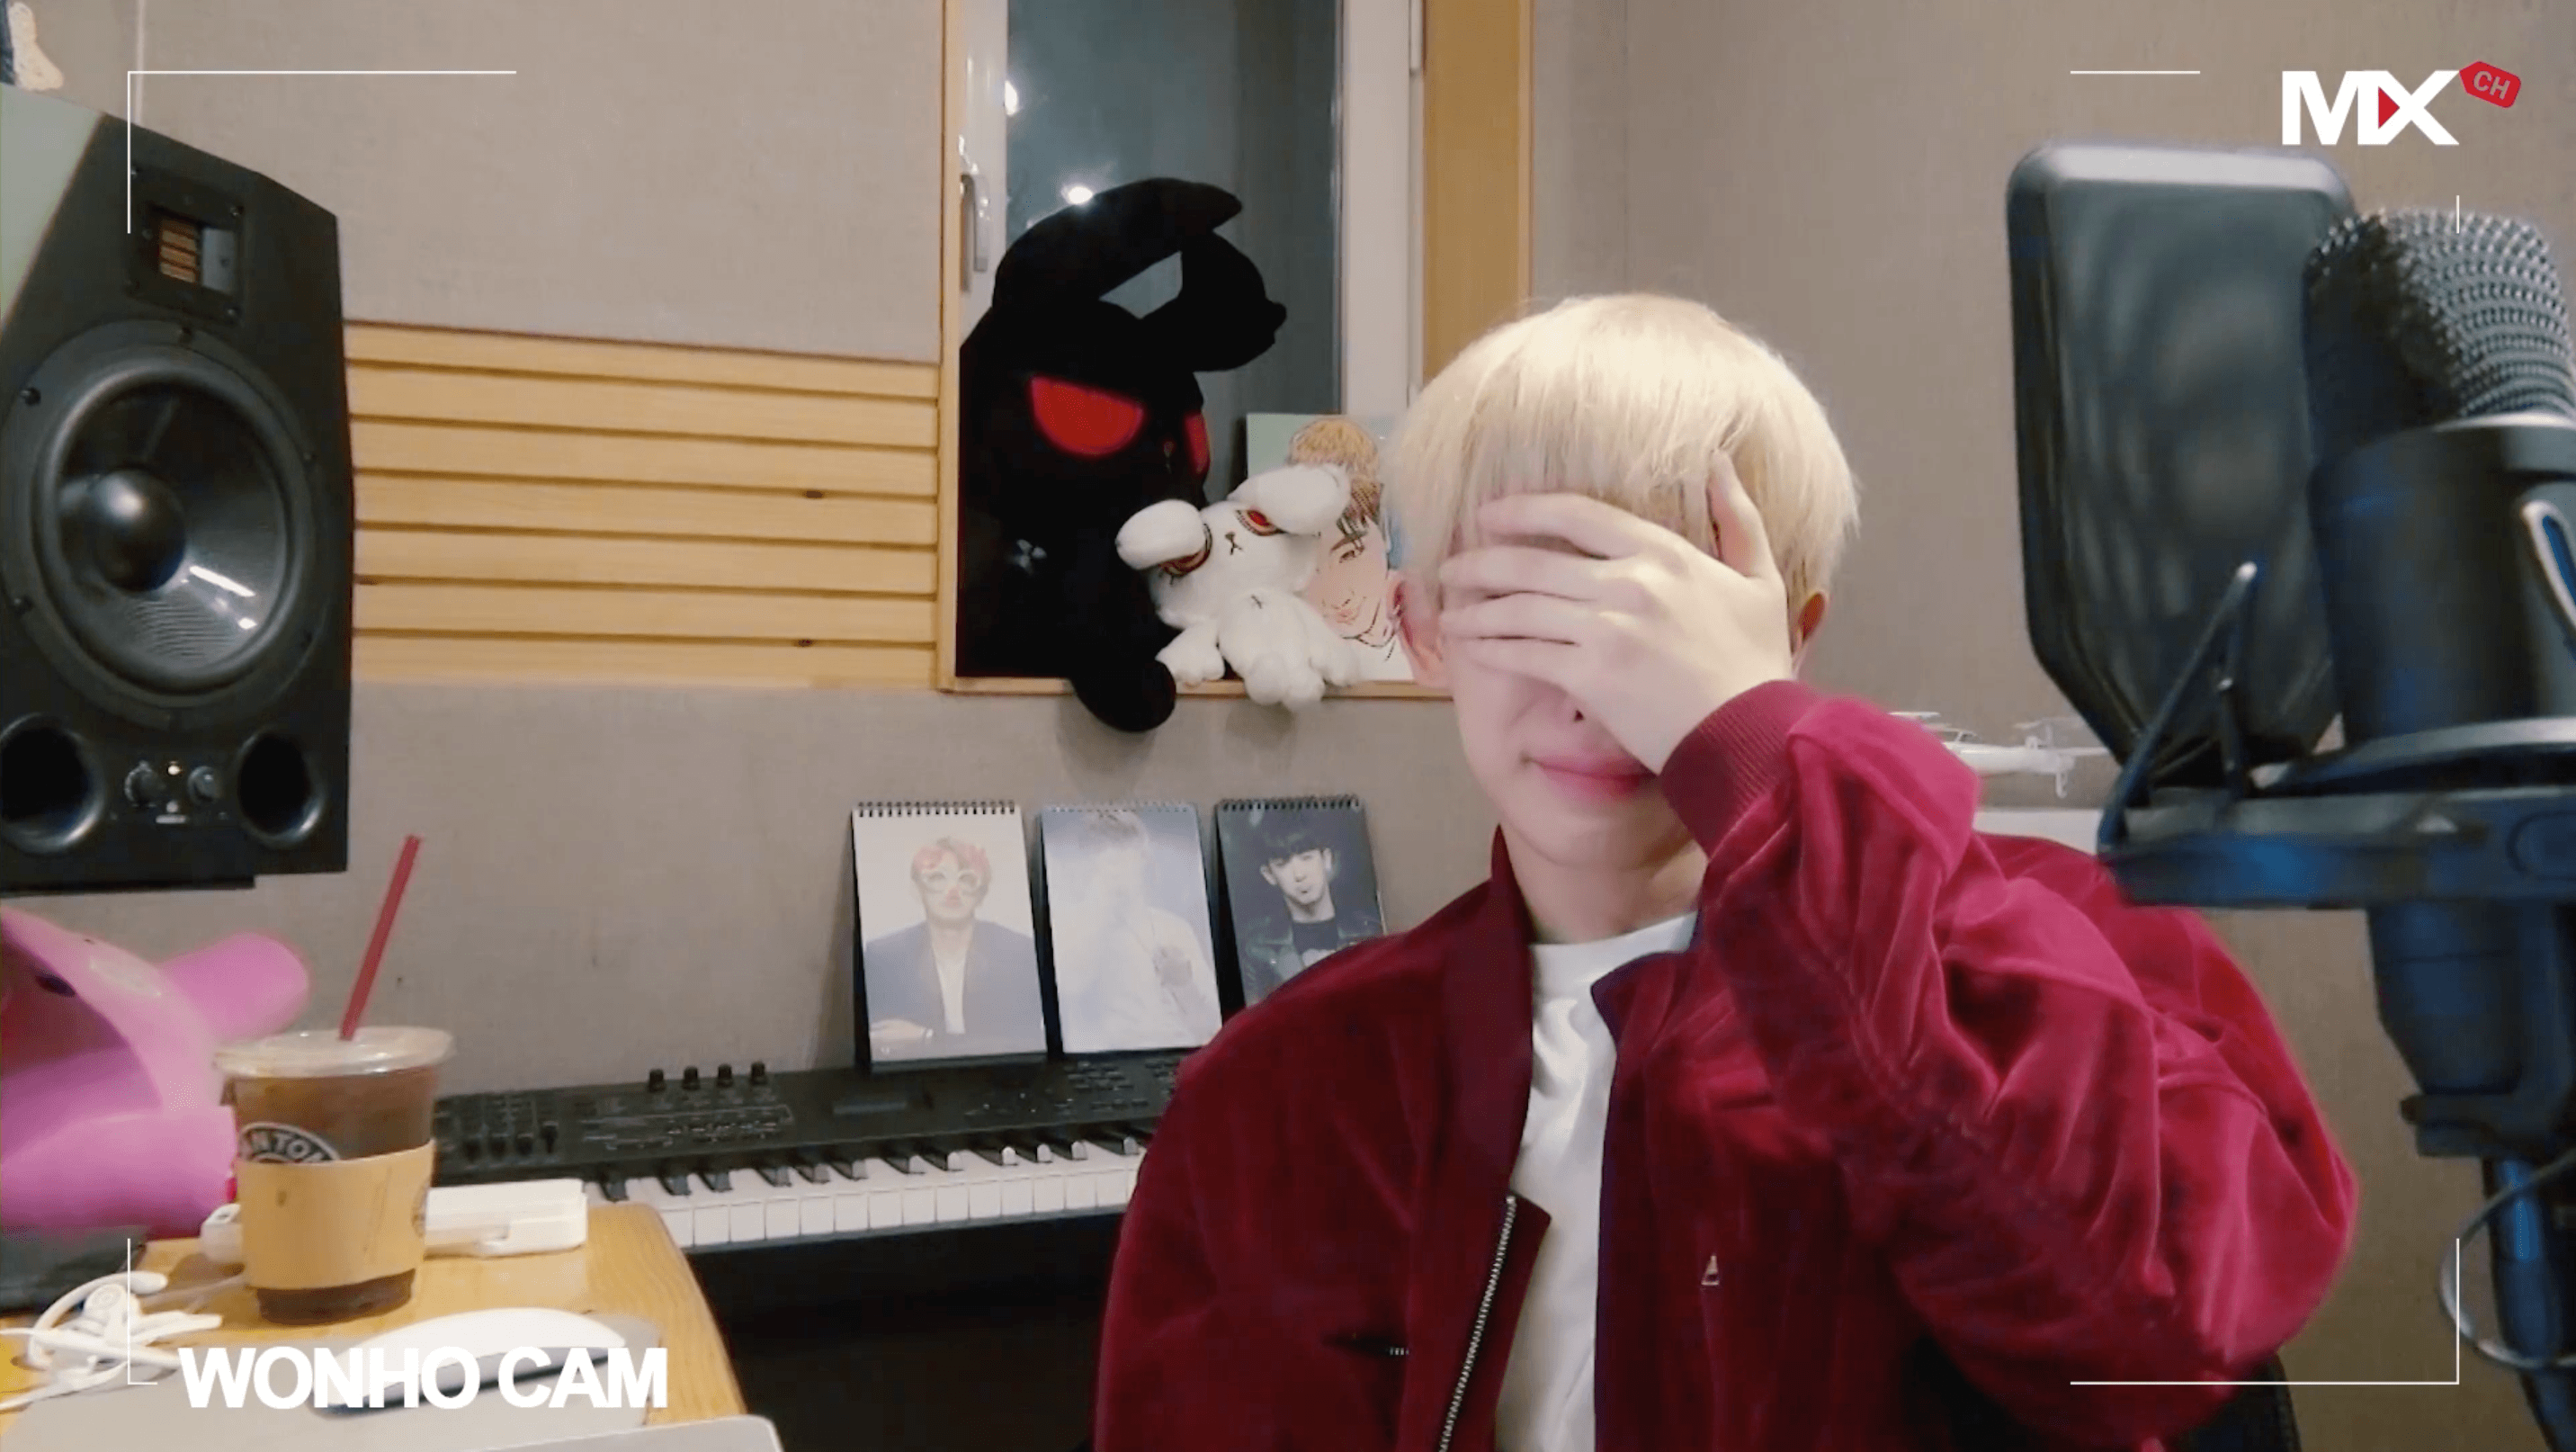 Monsta X Wonho Brought To Tears While Confessing His Love For Fans